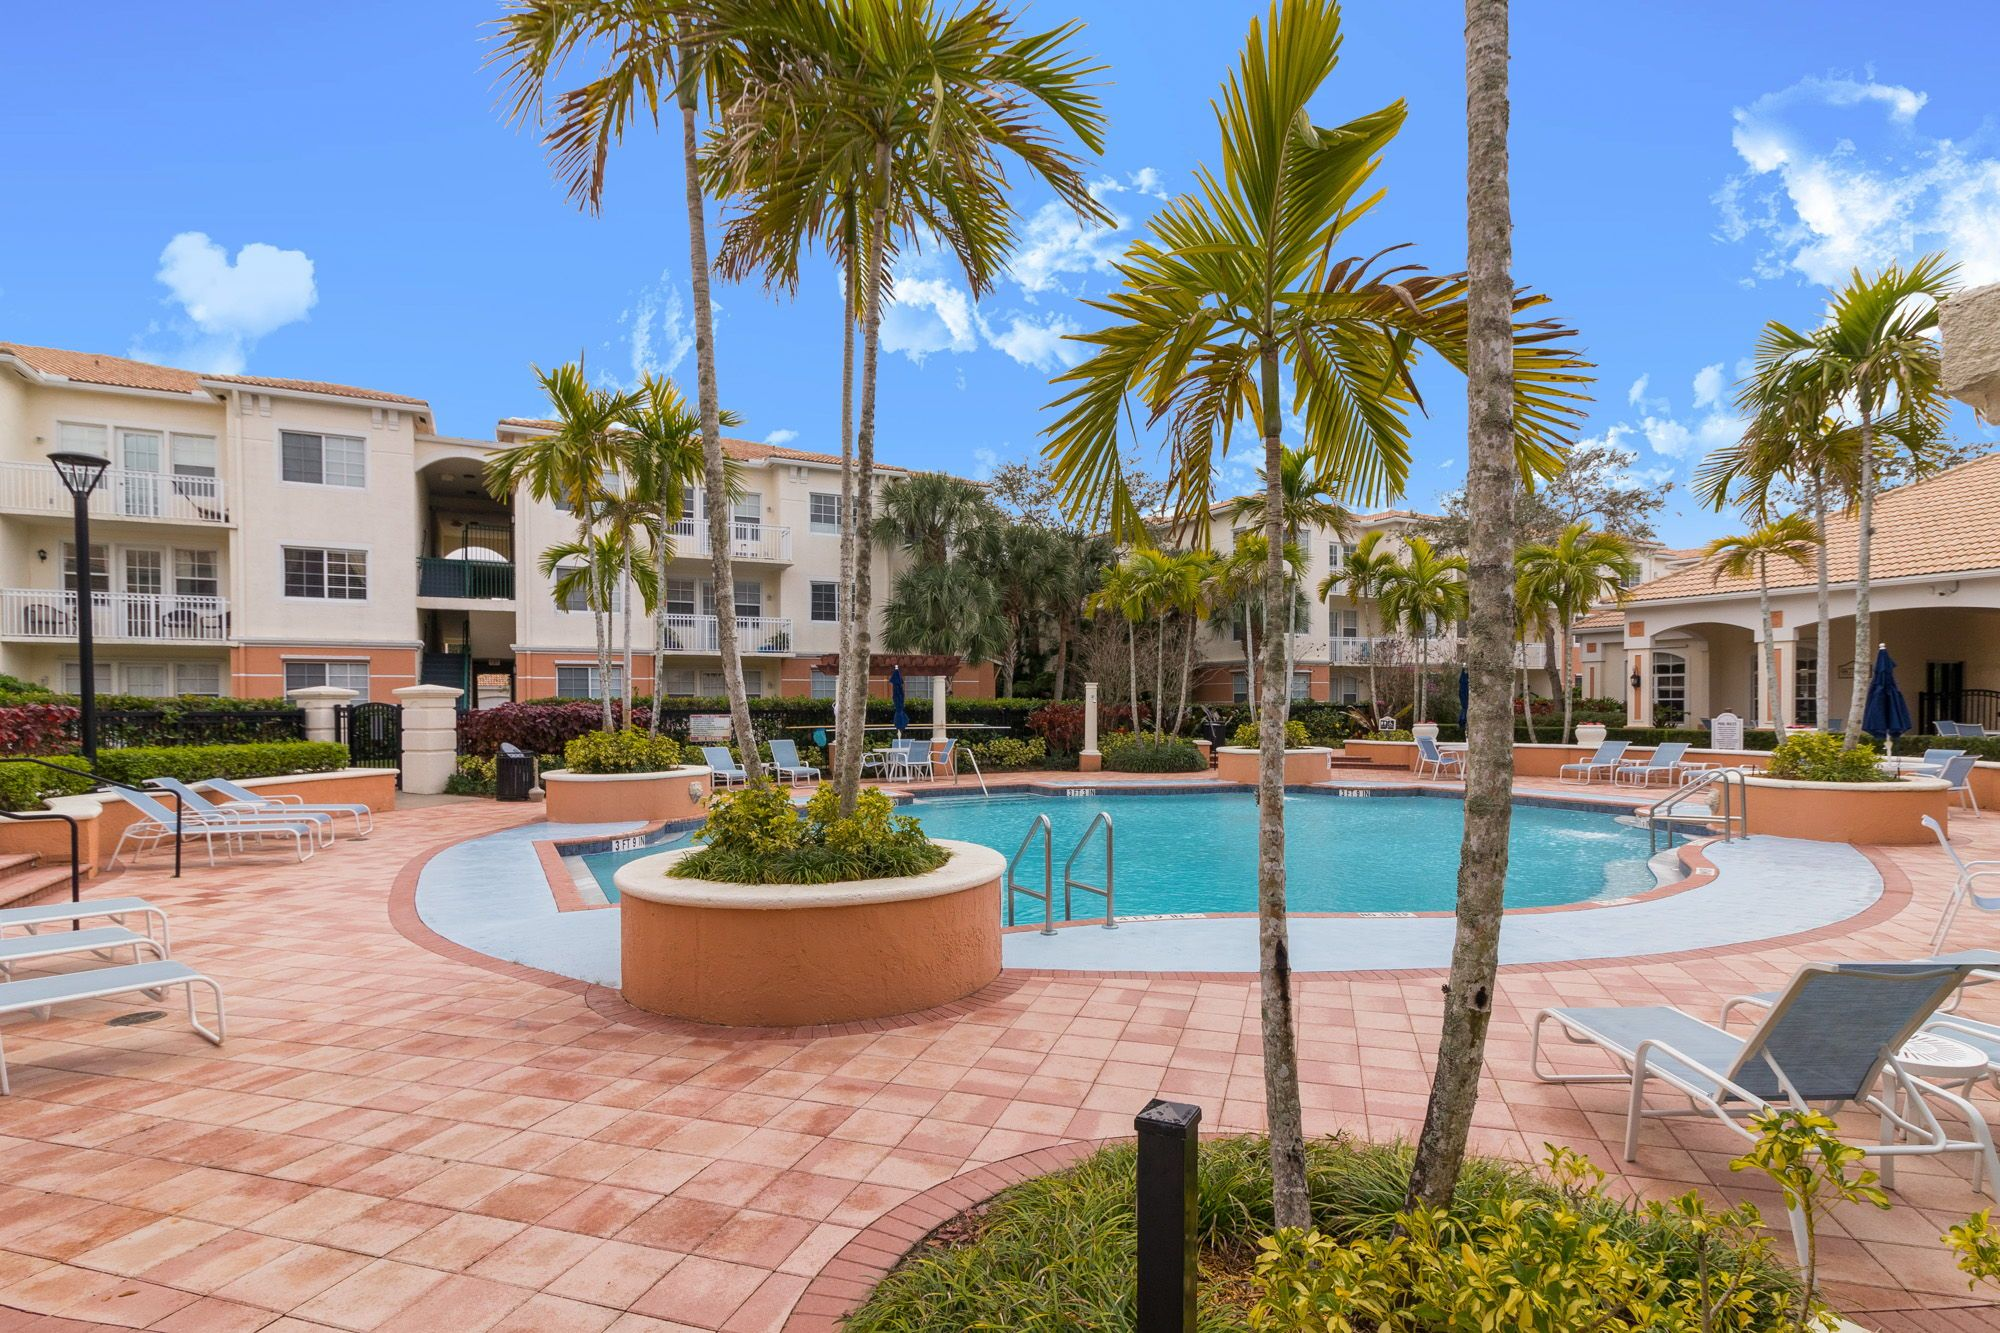 Mezzano Is A Newer Family Friendly Private Gated Community Centrally Located In West Palm Beach Amenities Inclu Resort Style Pool West Palm Beach Palm Beach